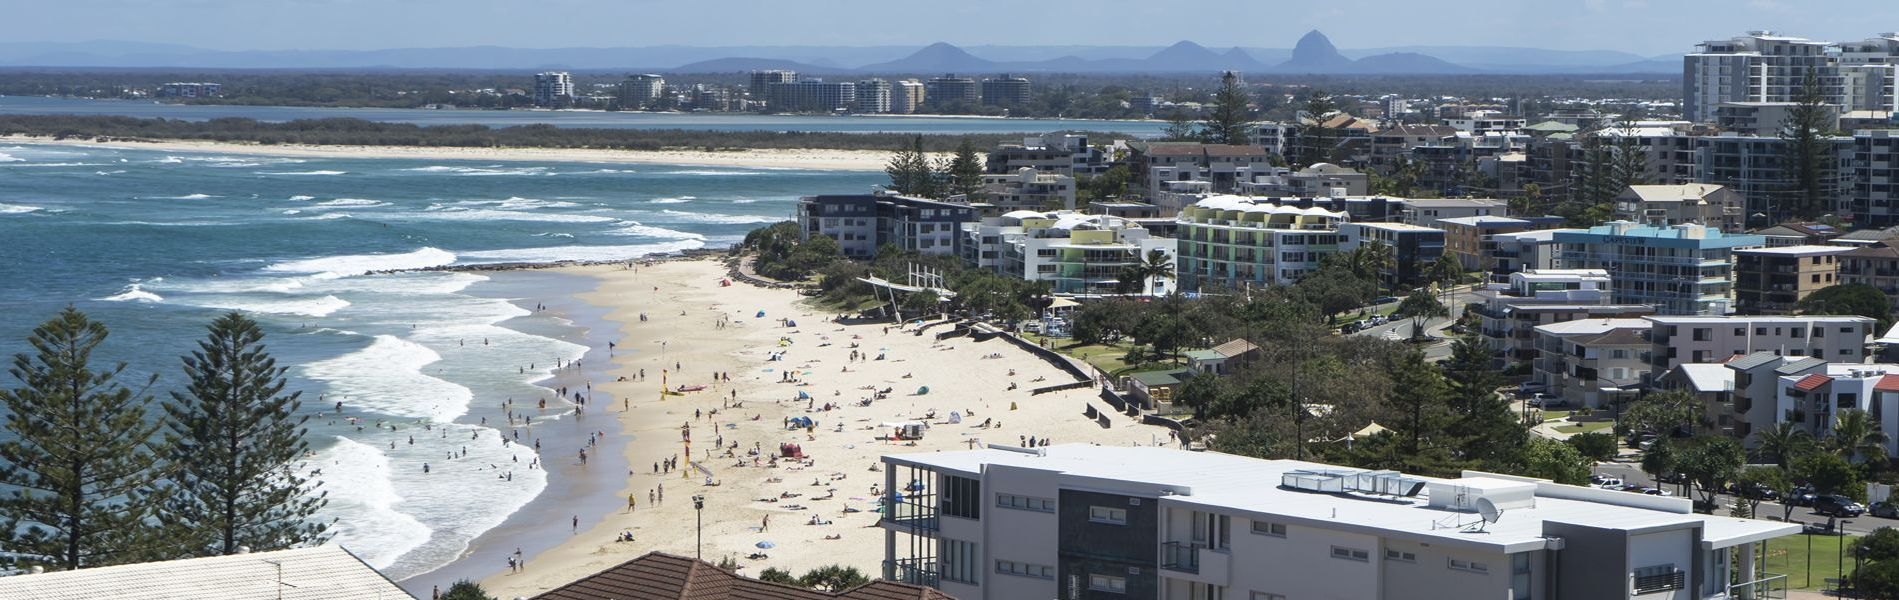 Kings Beach Caloundra Meridian Caloundra Holiday Apartments